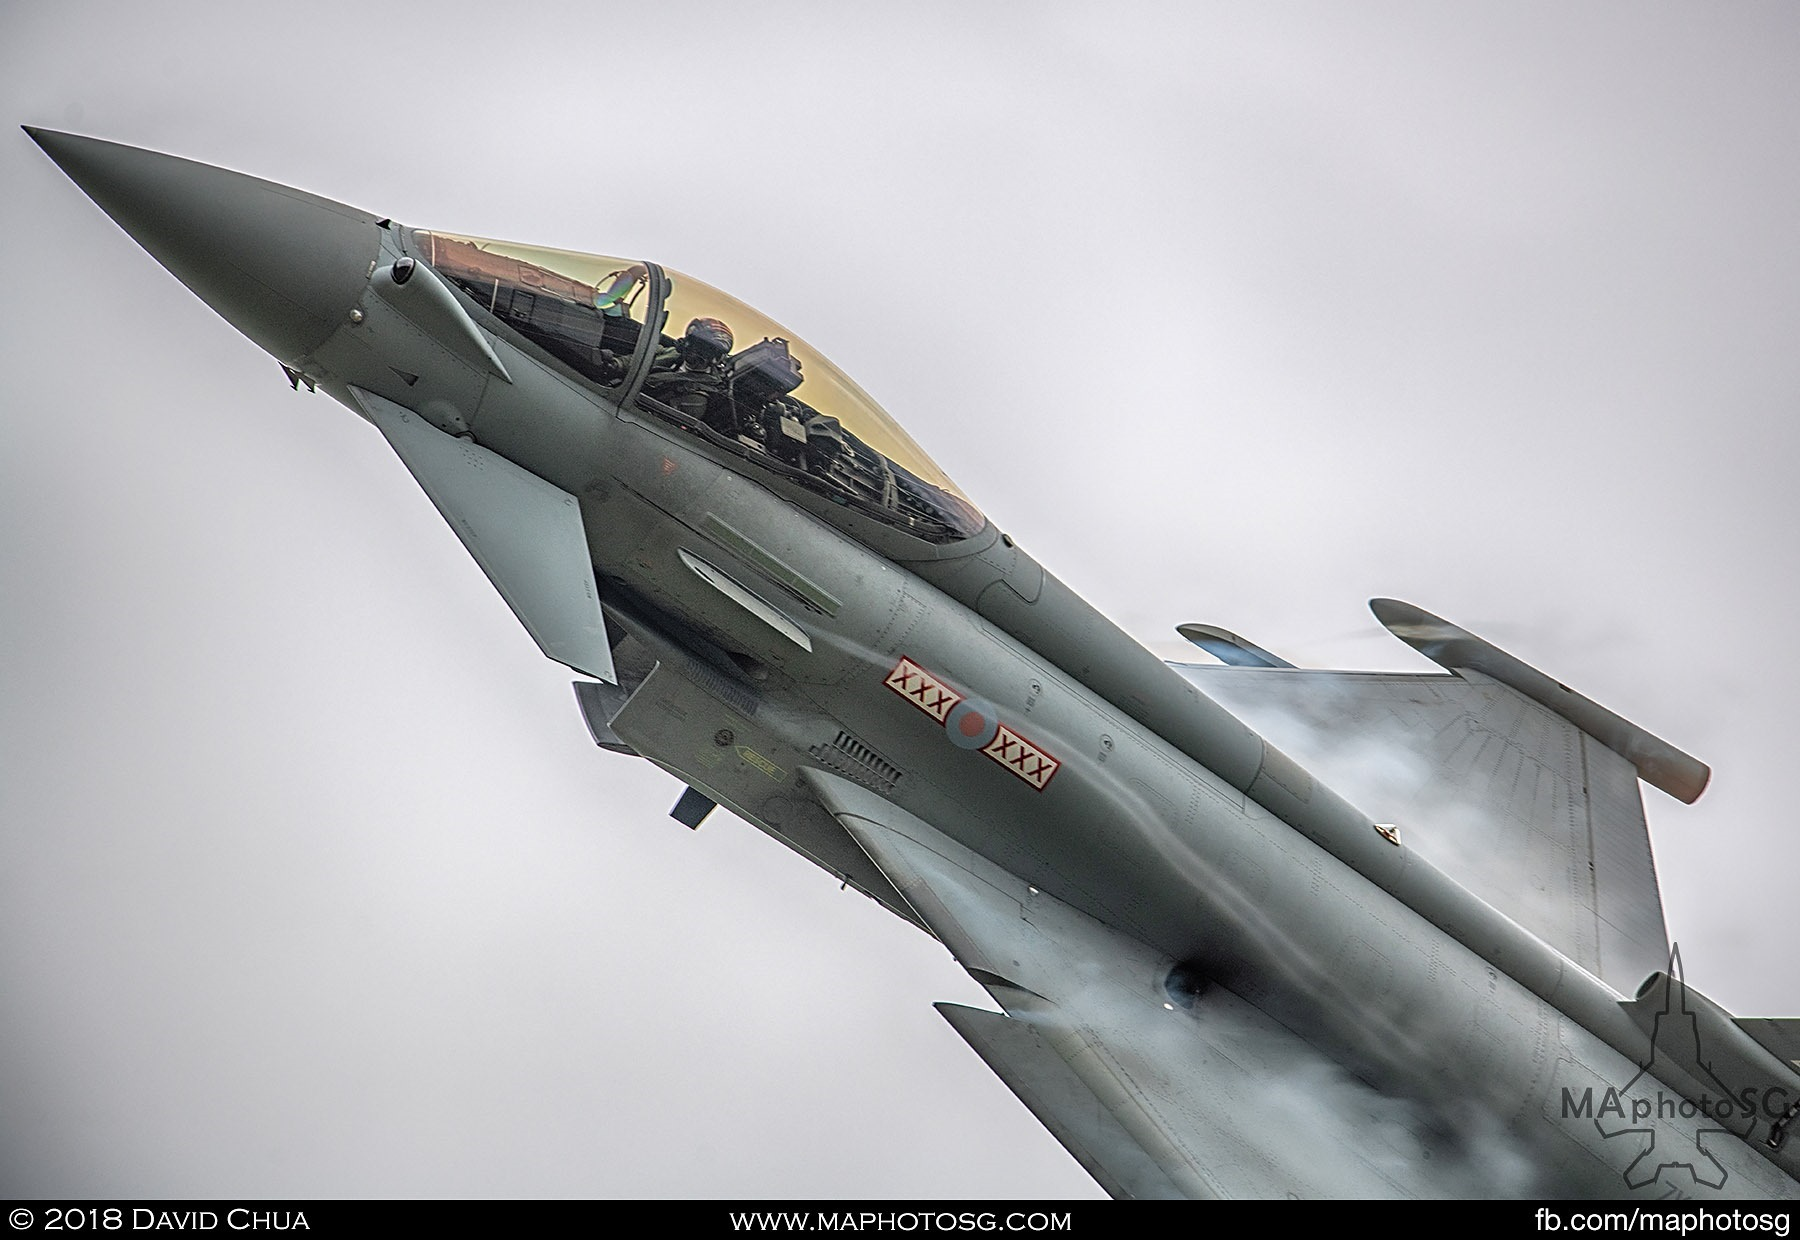 35. Pilot of the Royal Air Force Eurofighter Typhoon